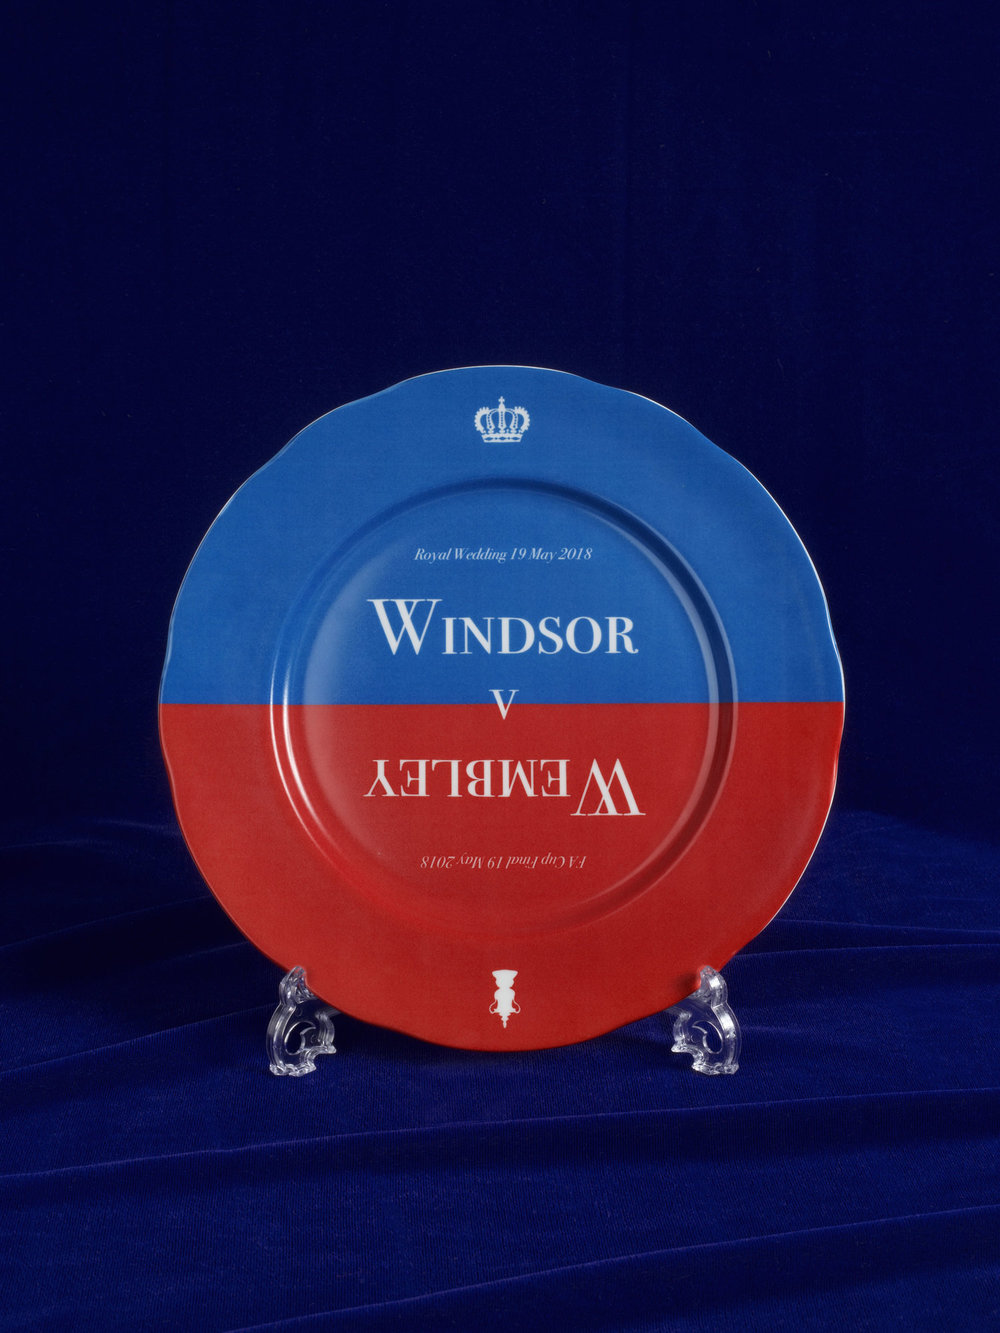 Harry and Meghan Wedding Windsor Wembley Plate.jpg